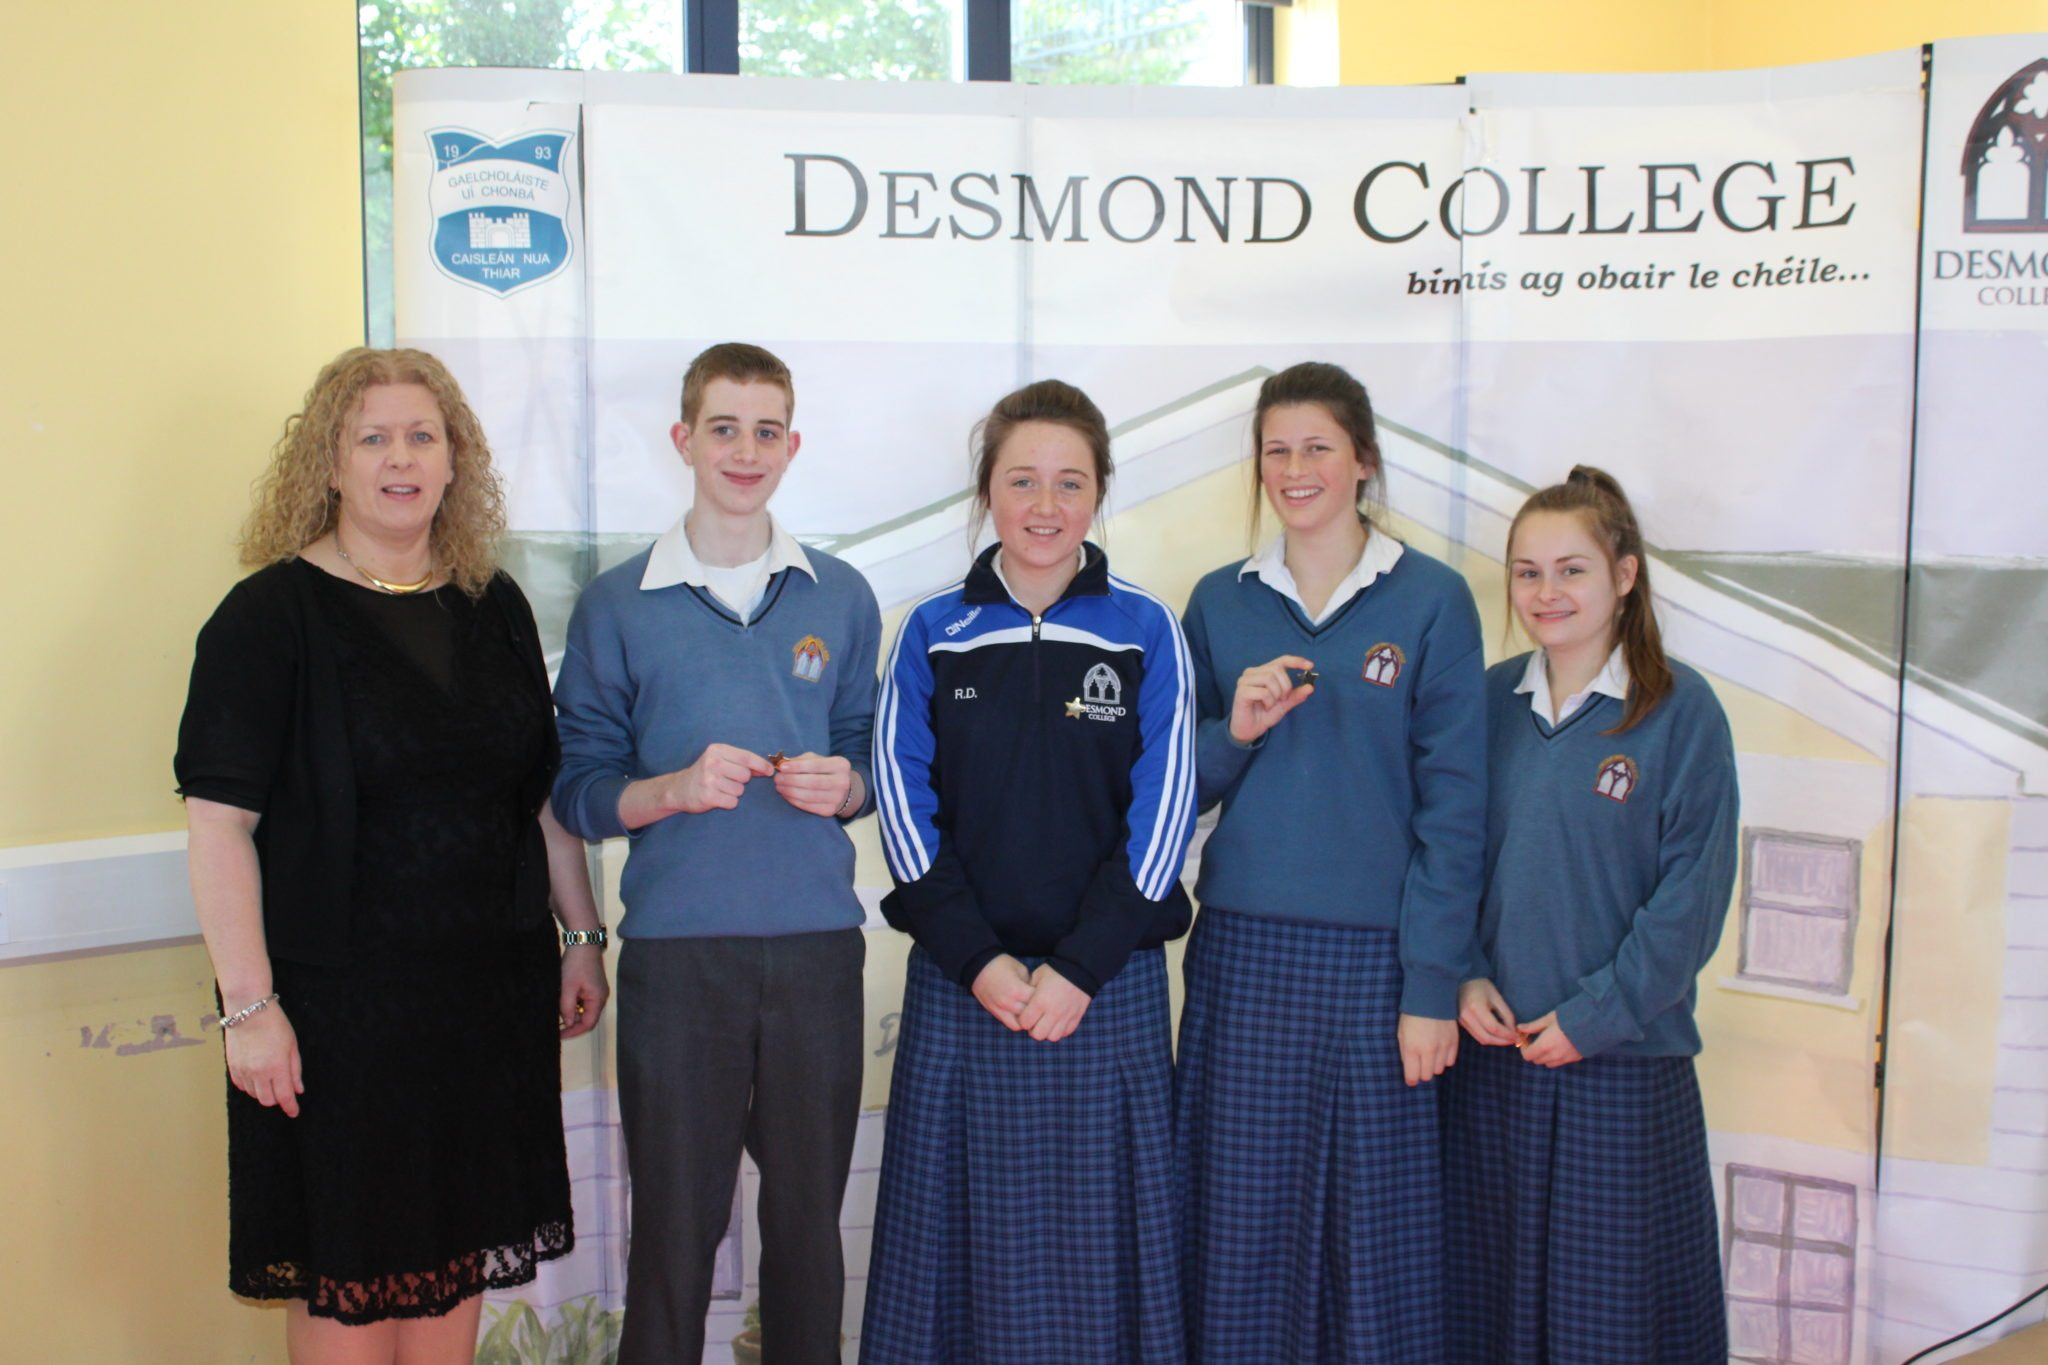 Desmond College Student Awards: May 2015: DEDICATION AND COMMITMENT AWARDS: 5th year : Ms Gavin Barry with Garvin Crowley, Rachel Dore, Madeleine O'Doherty, and Danielle O'Connor